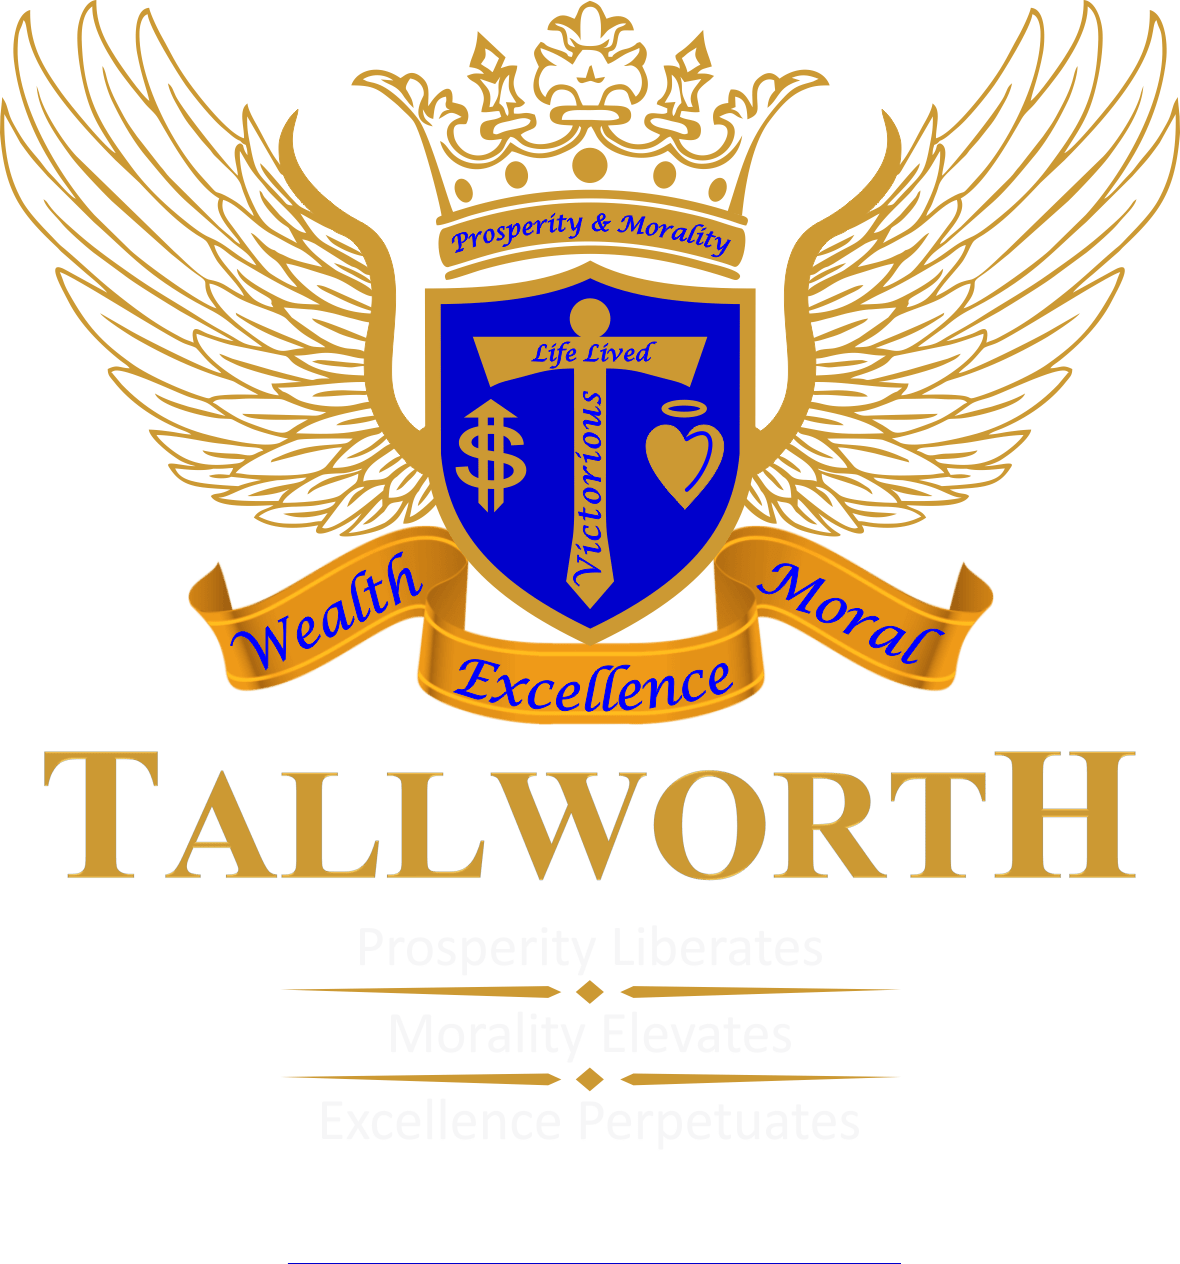 The Tallworth Charity Crest